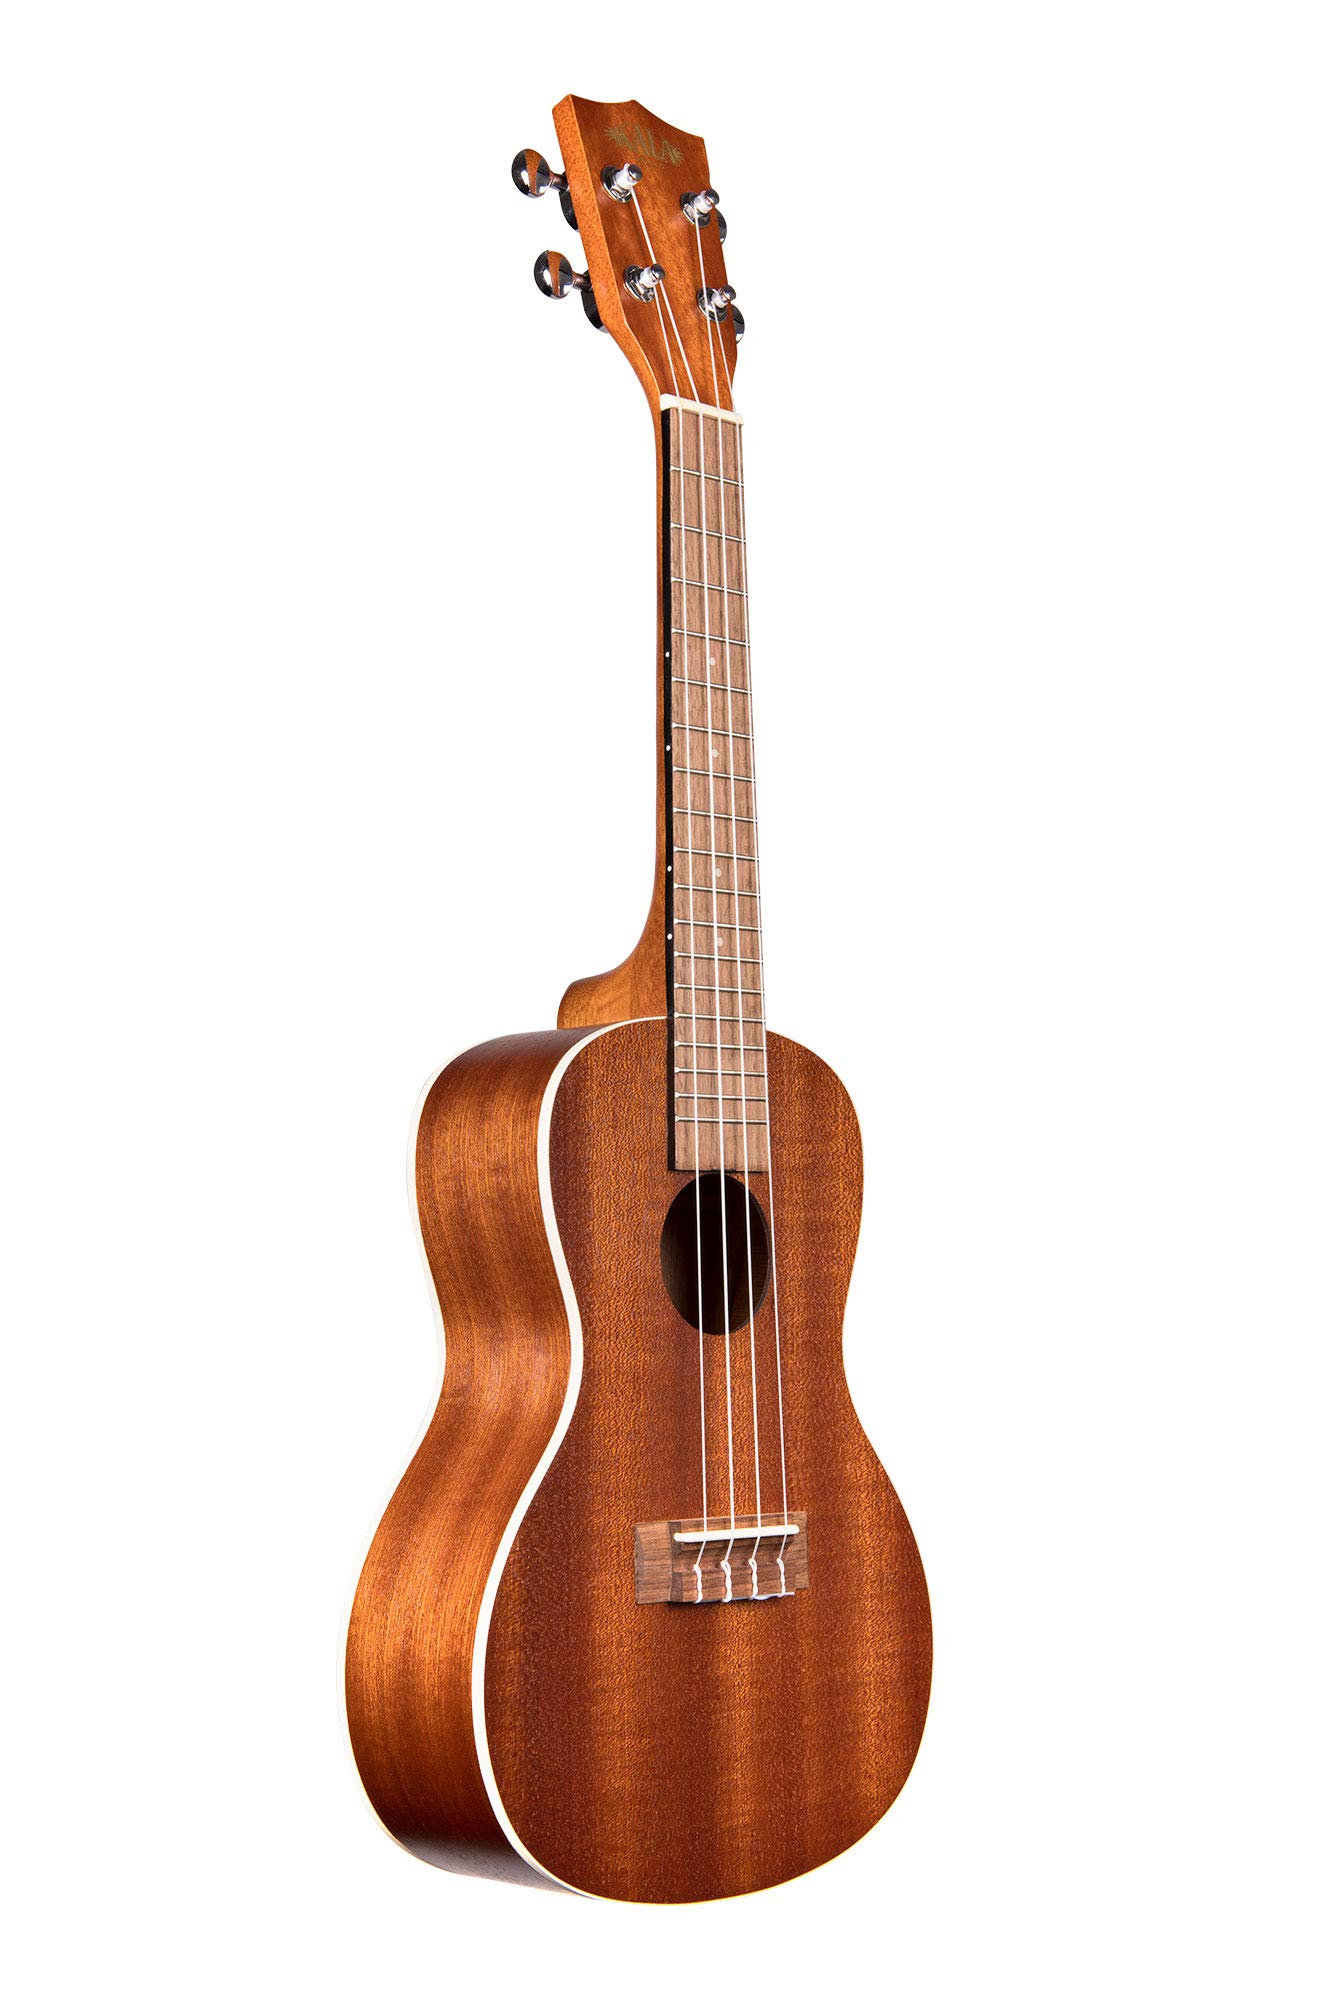 Kala Satin Mahogany Concert Ukulele with White Binding (KA-C)